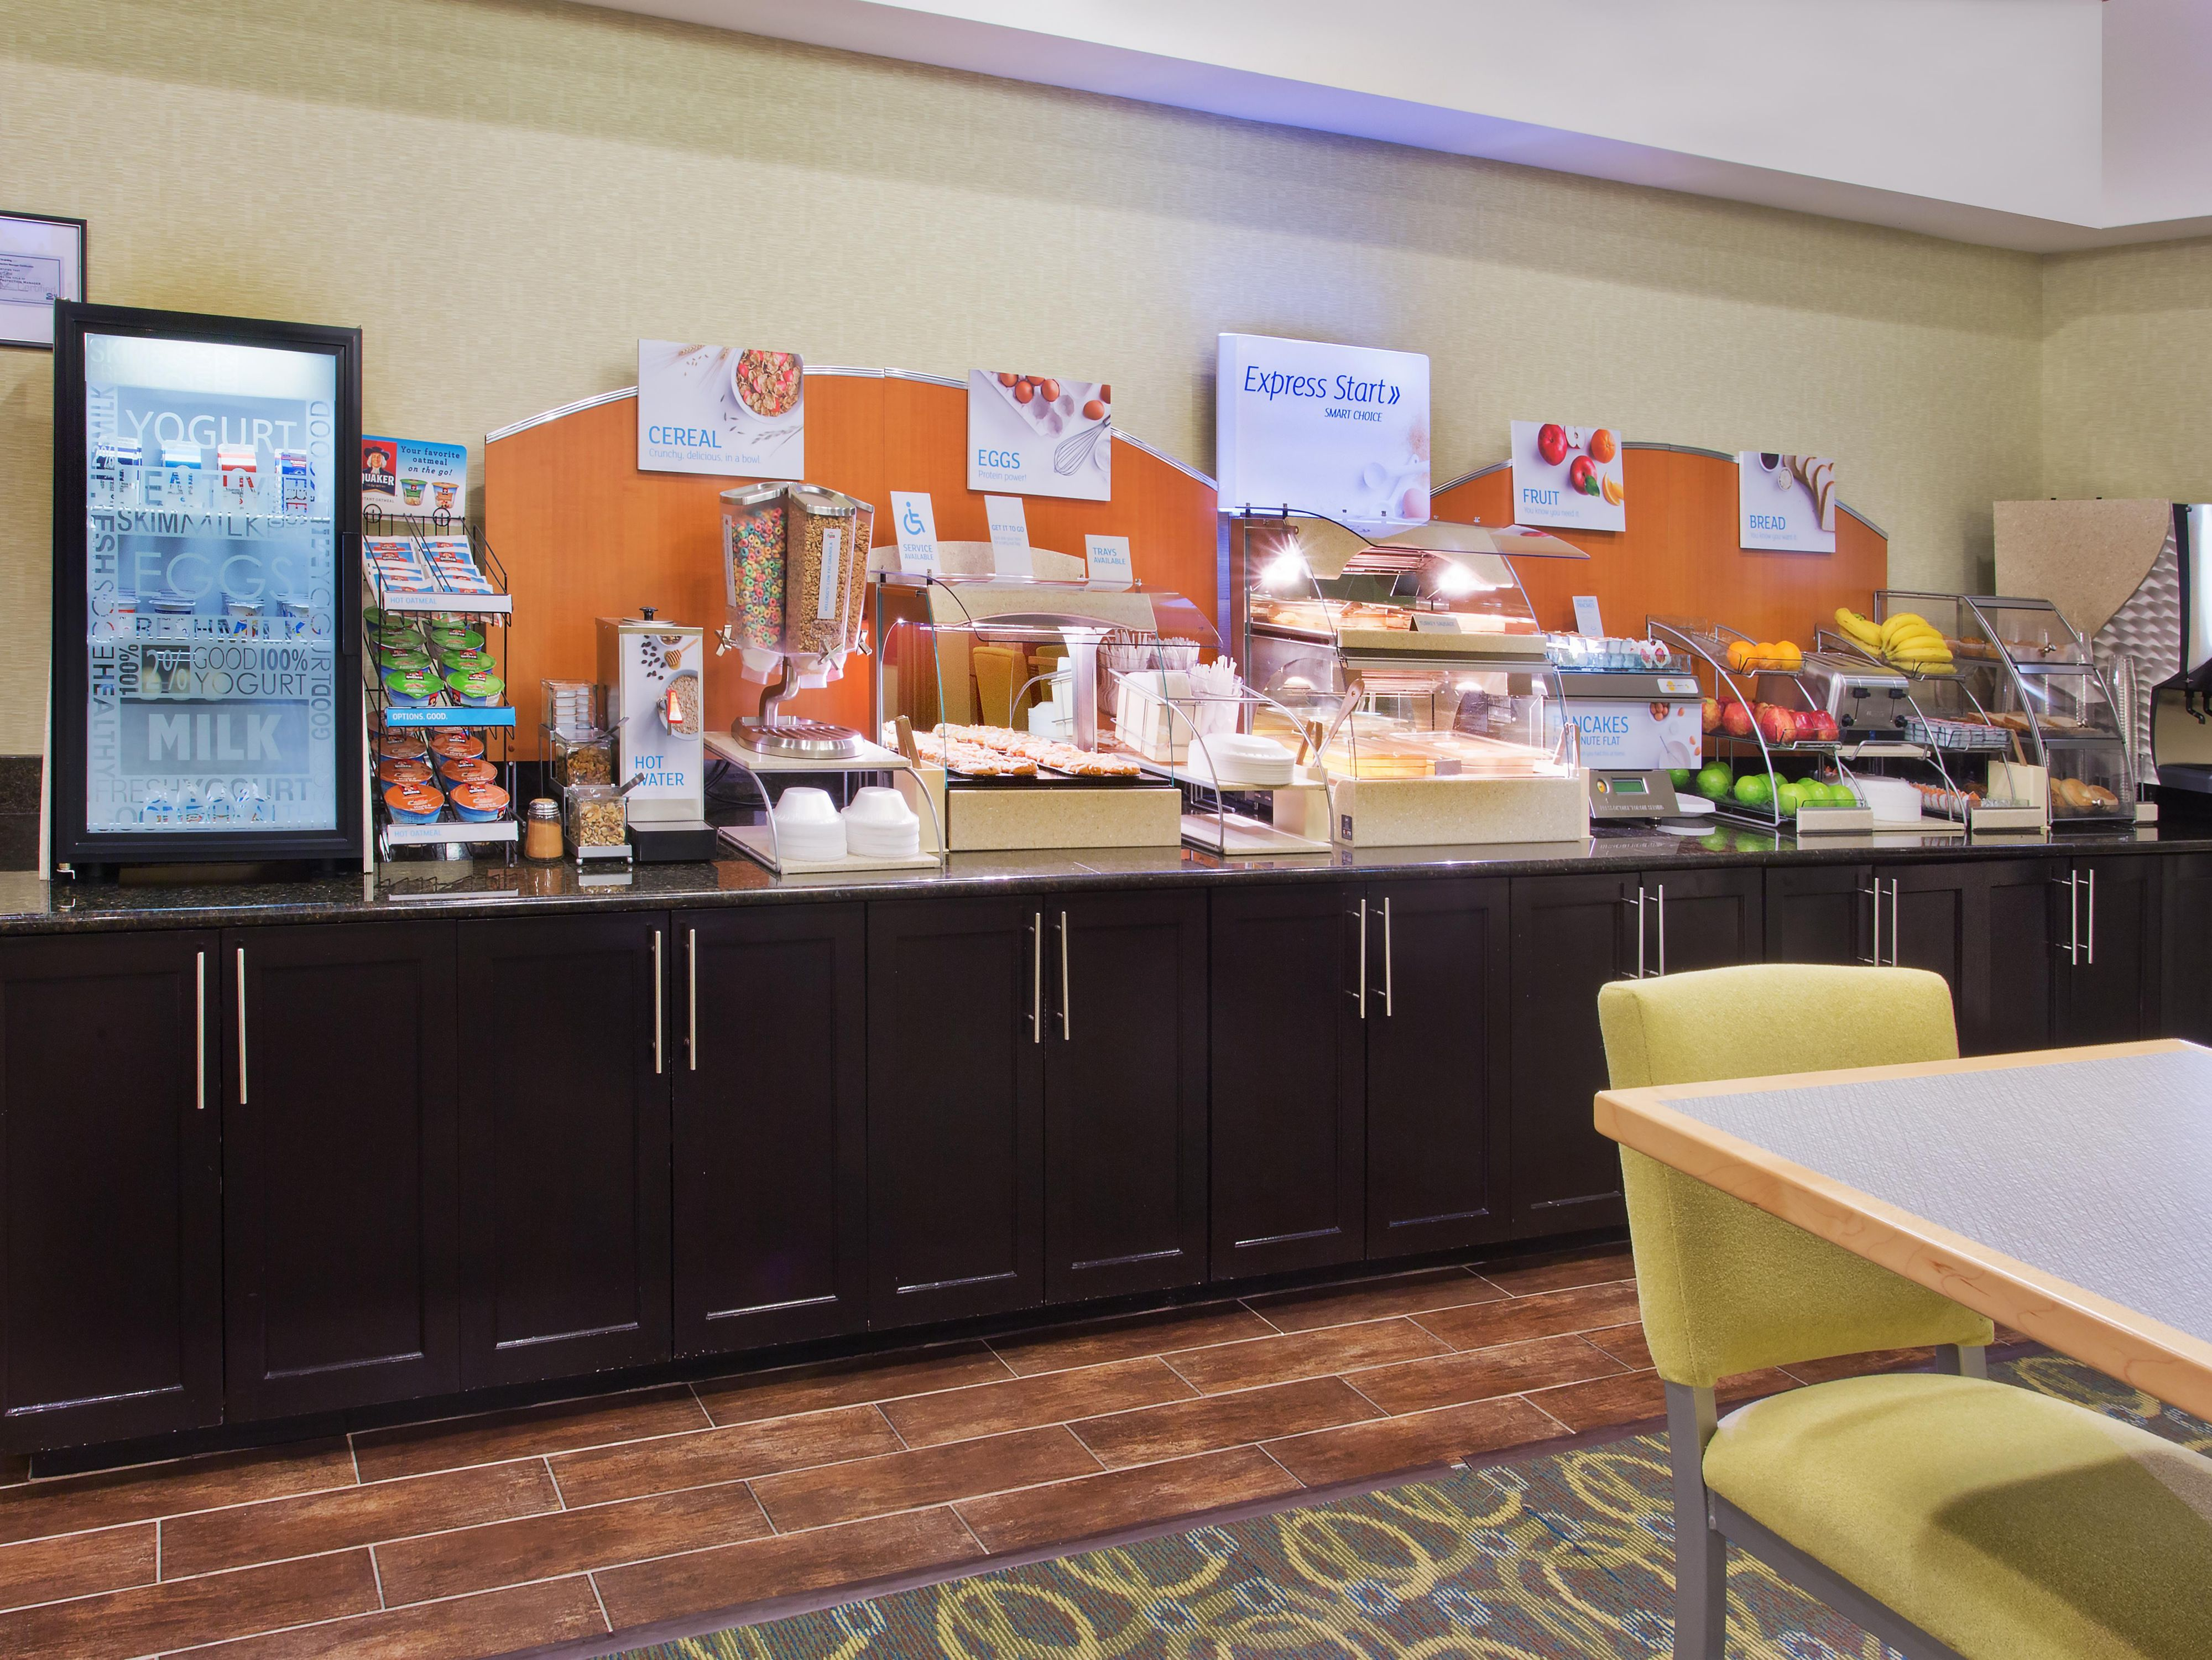 Our Express Start breakfast is waiting for you each morning.